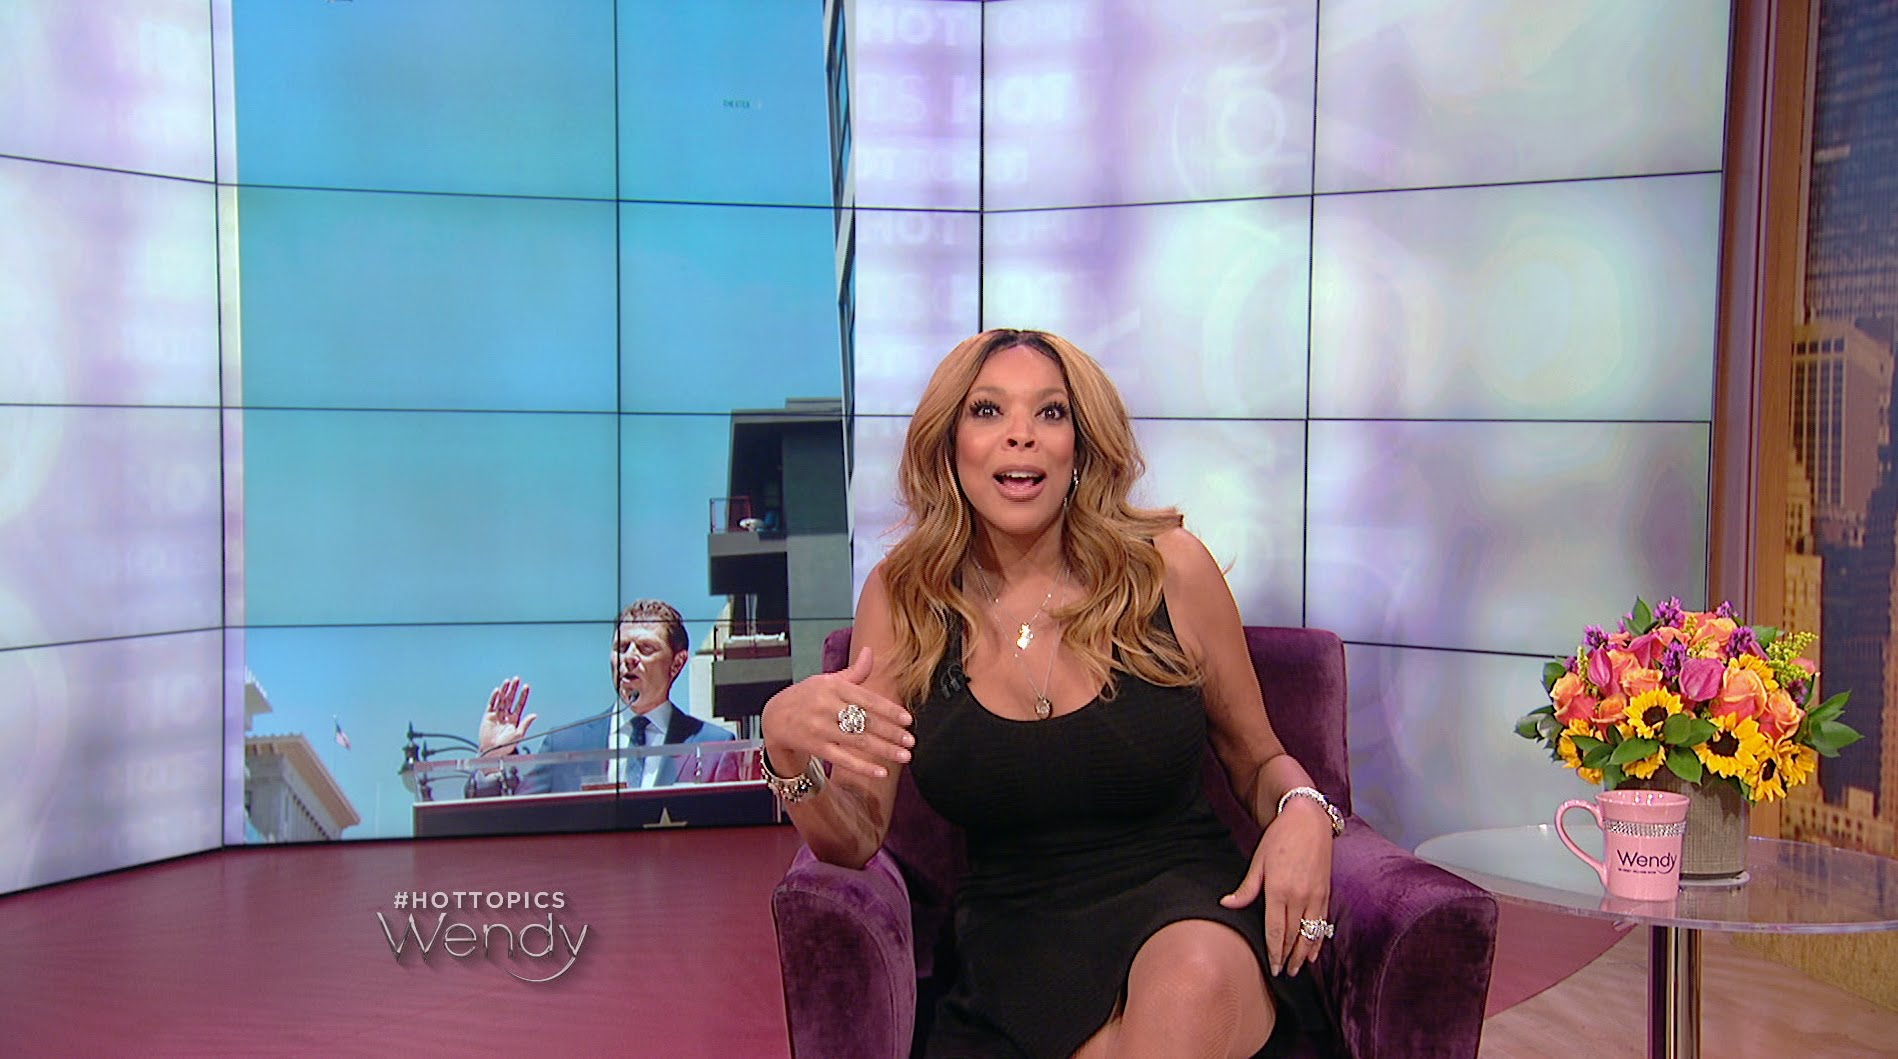 Wendy Williams Announces She's 'Crazy' About her New Doctor Bae